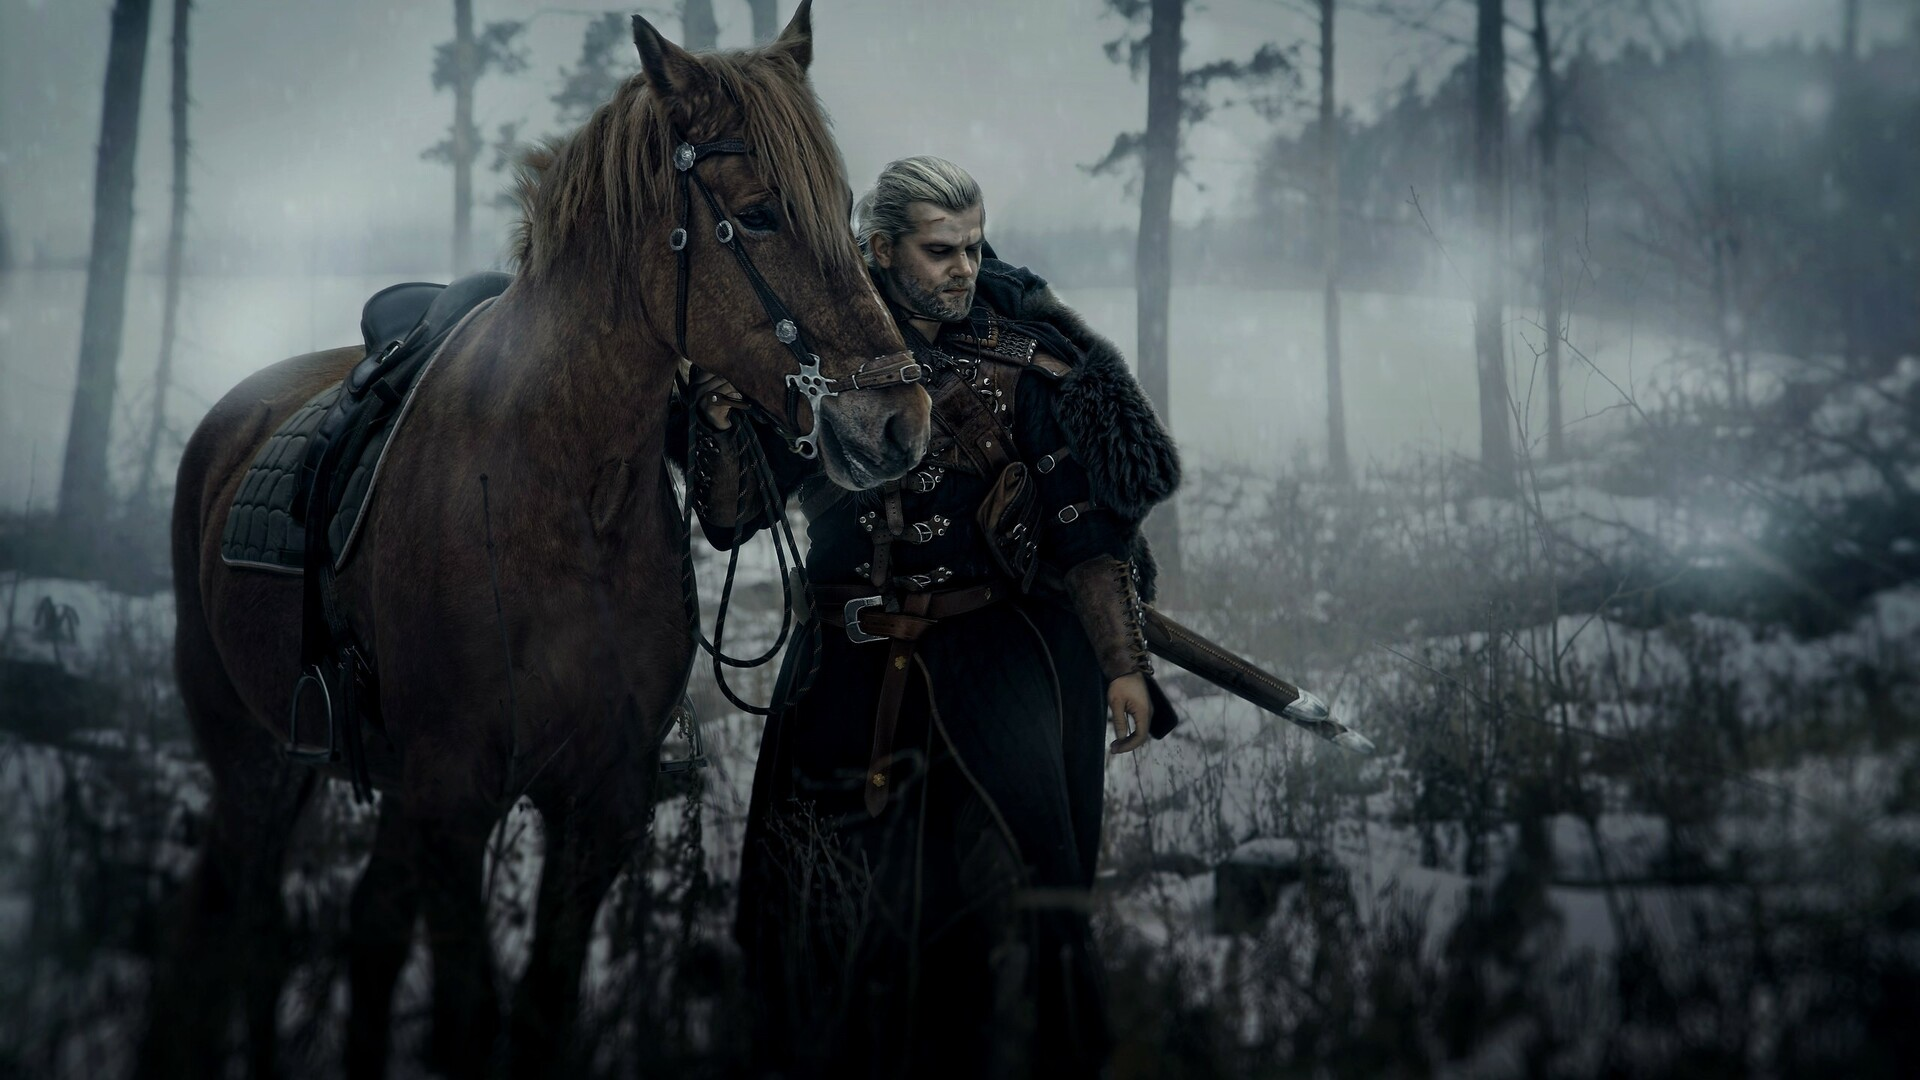 1920x1080 The Witcher Geralt Of Rivia Cosplay Laptop Full